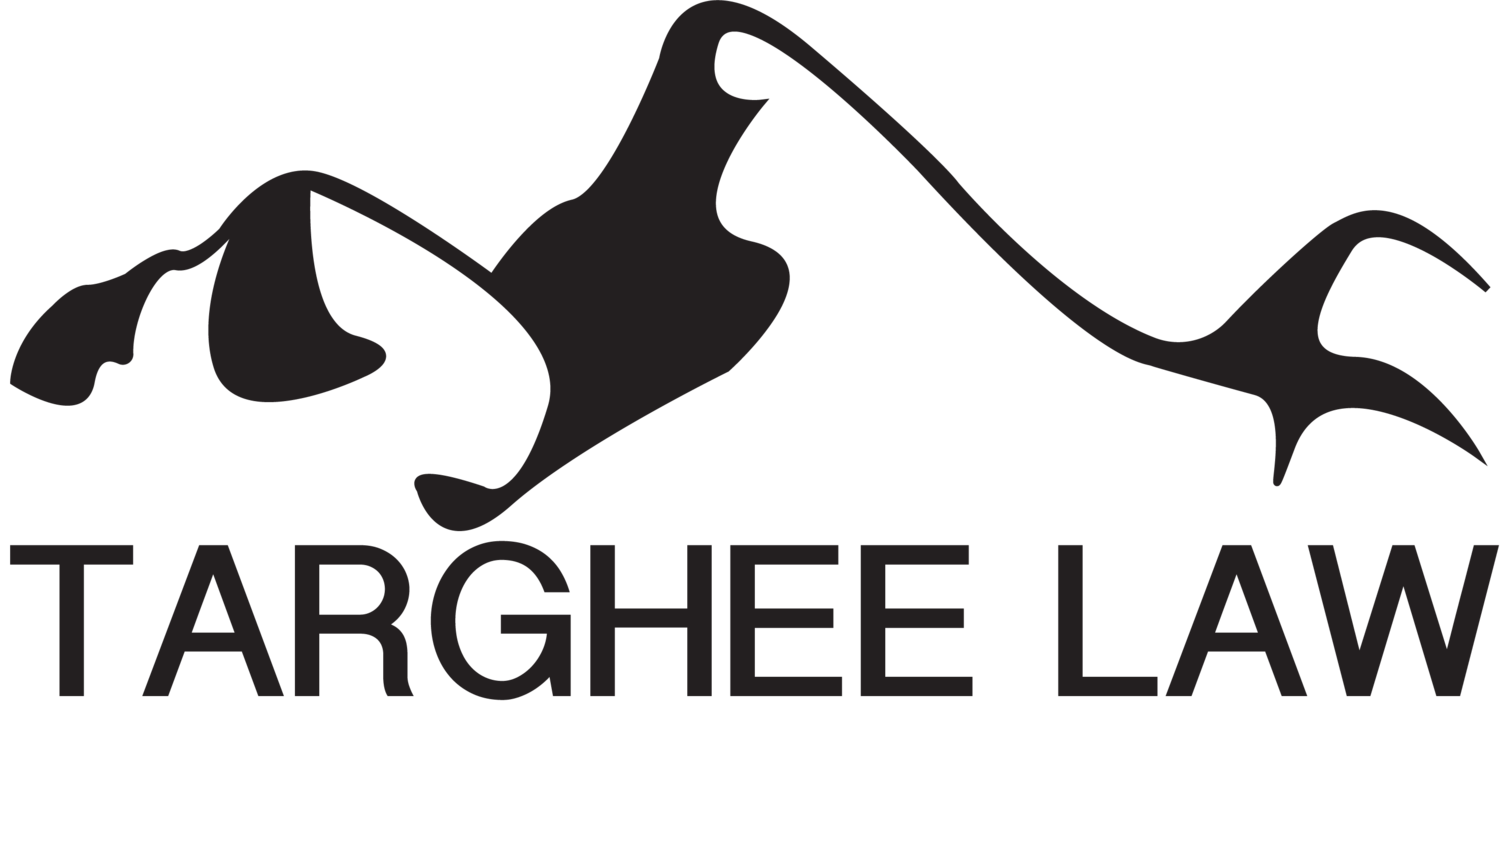 Targhee Law